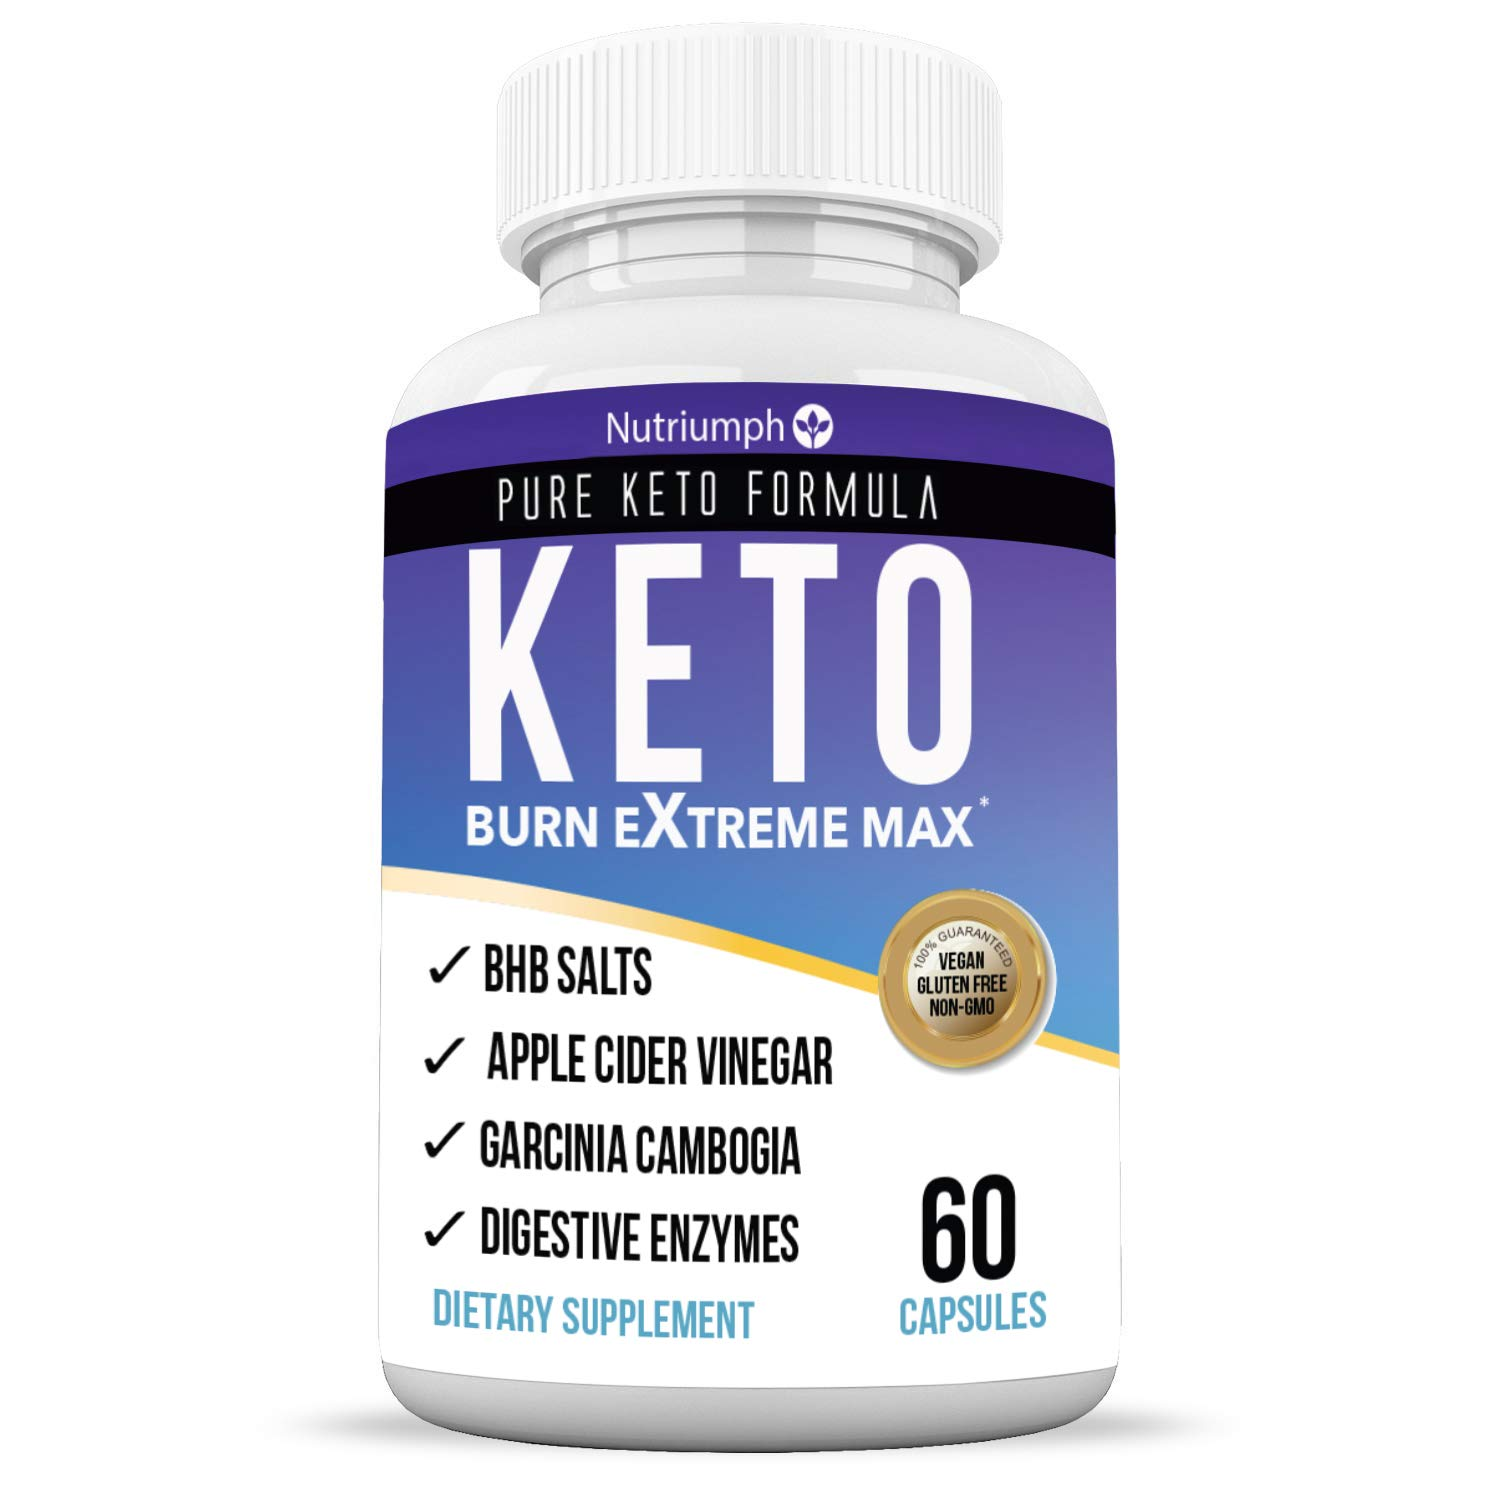 Details About Keto Burn Extreme Max Fat Burner Diet Pills Ketogenic Weight Loss 60 Capsules